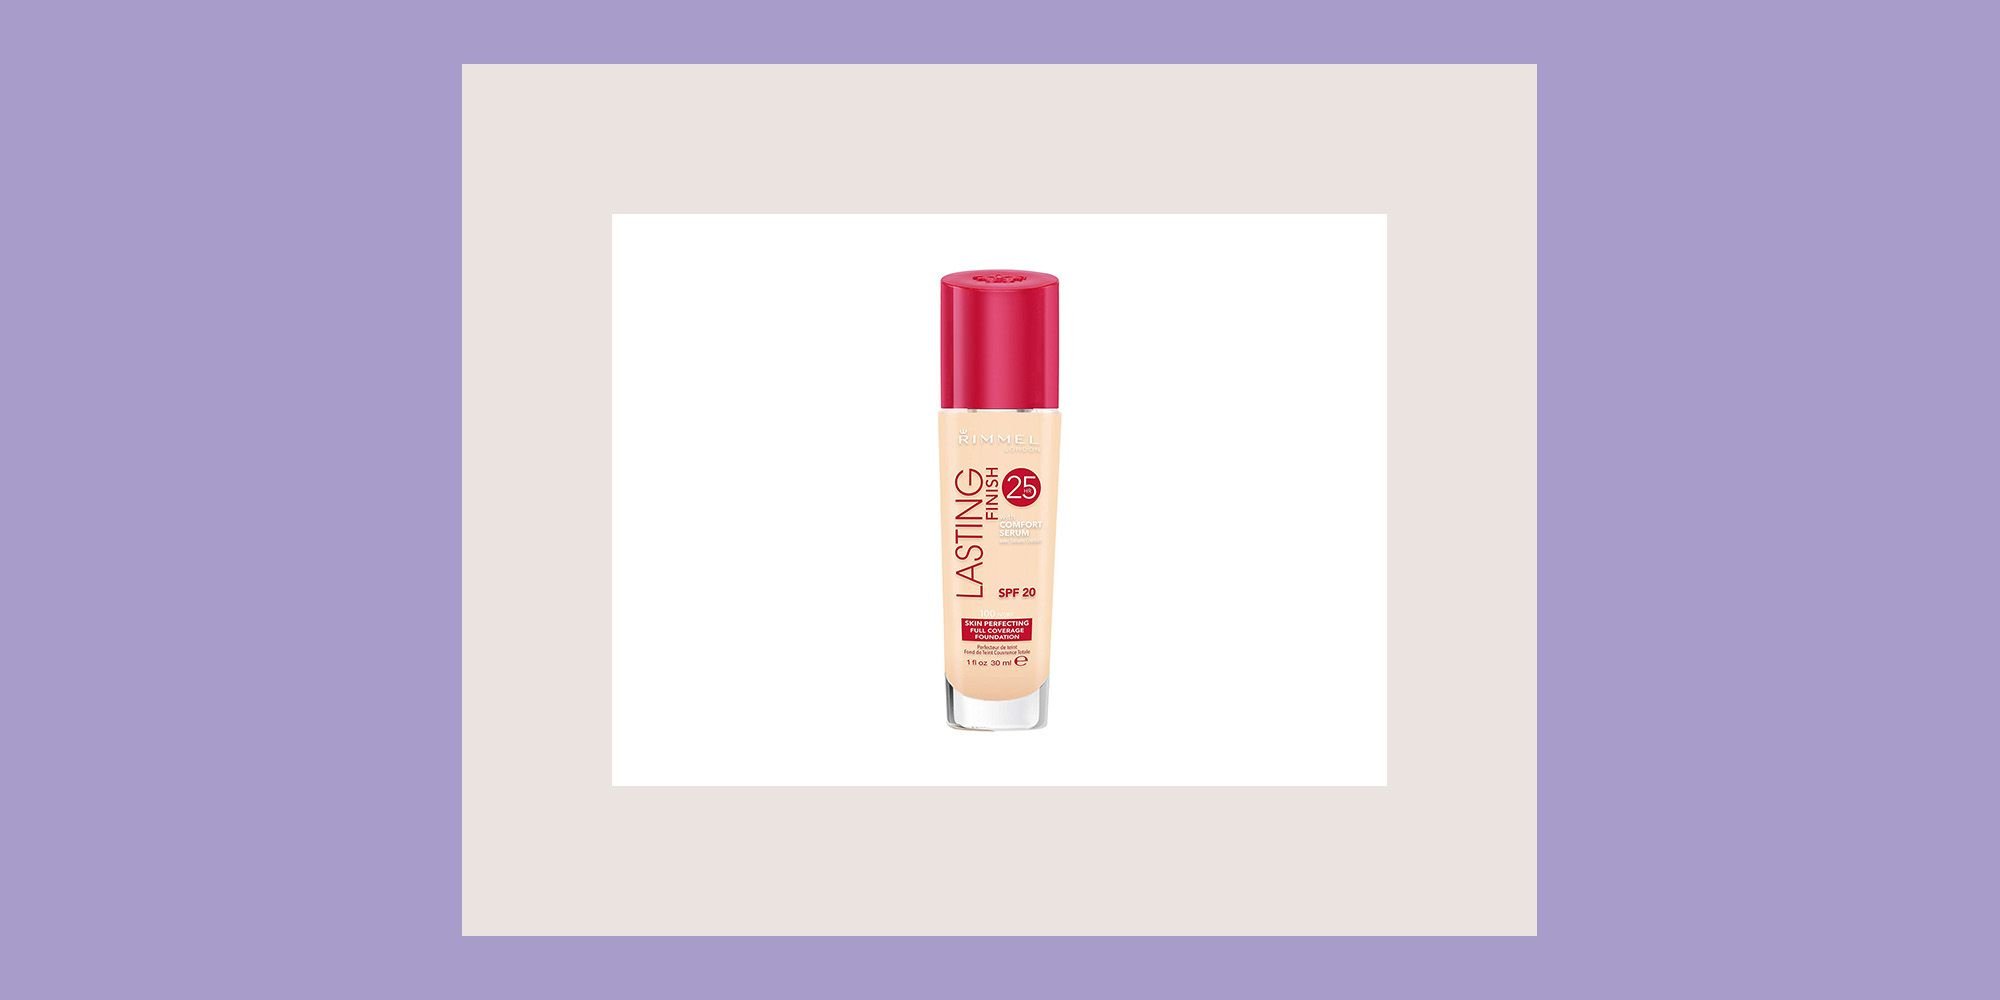 Rimmel London Lasting Finish 25 Hour Full Coverage Liquid Foundation